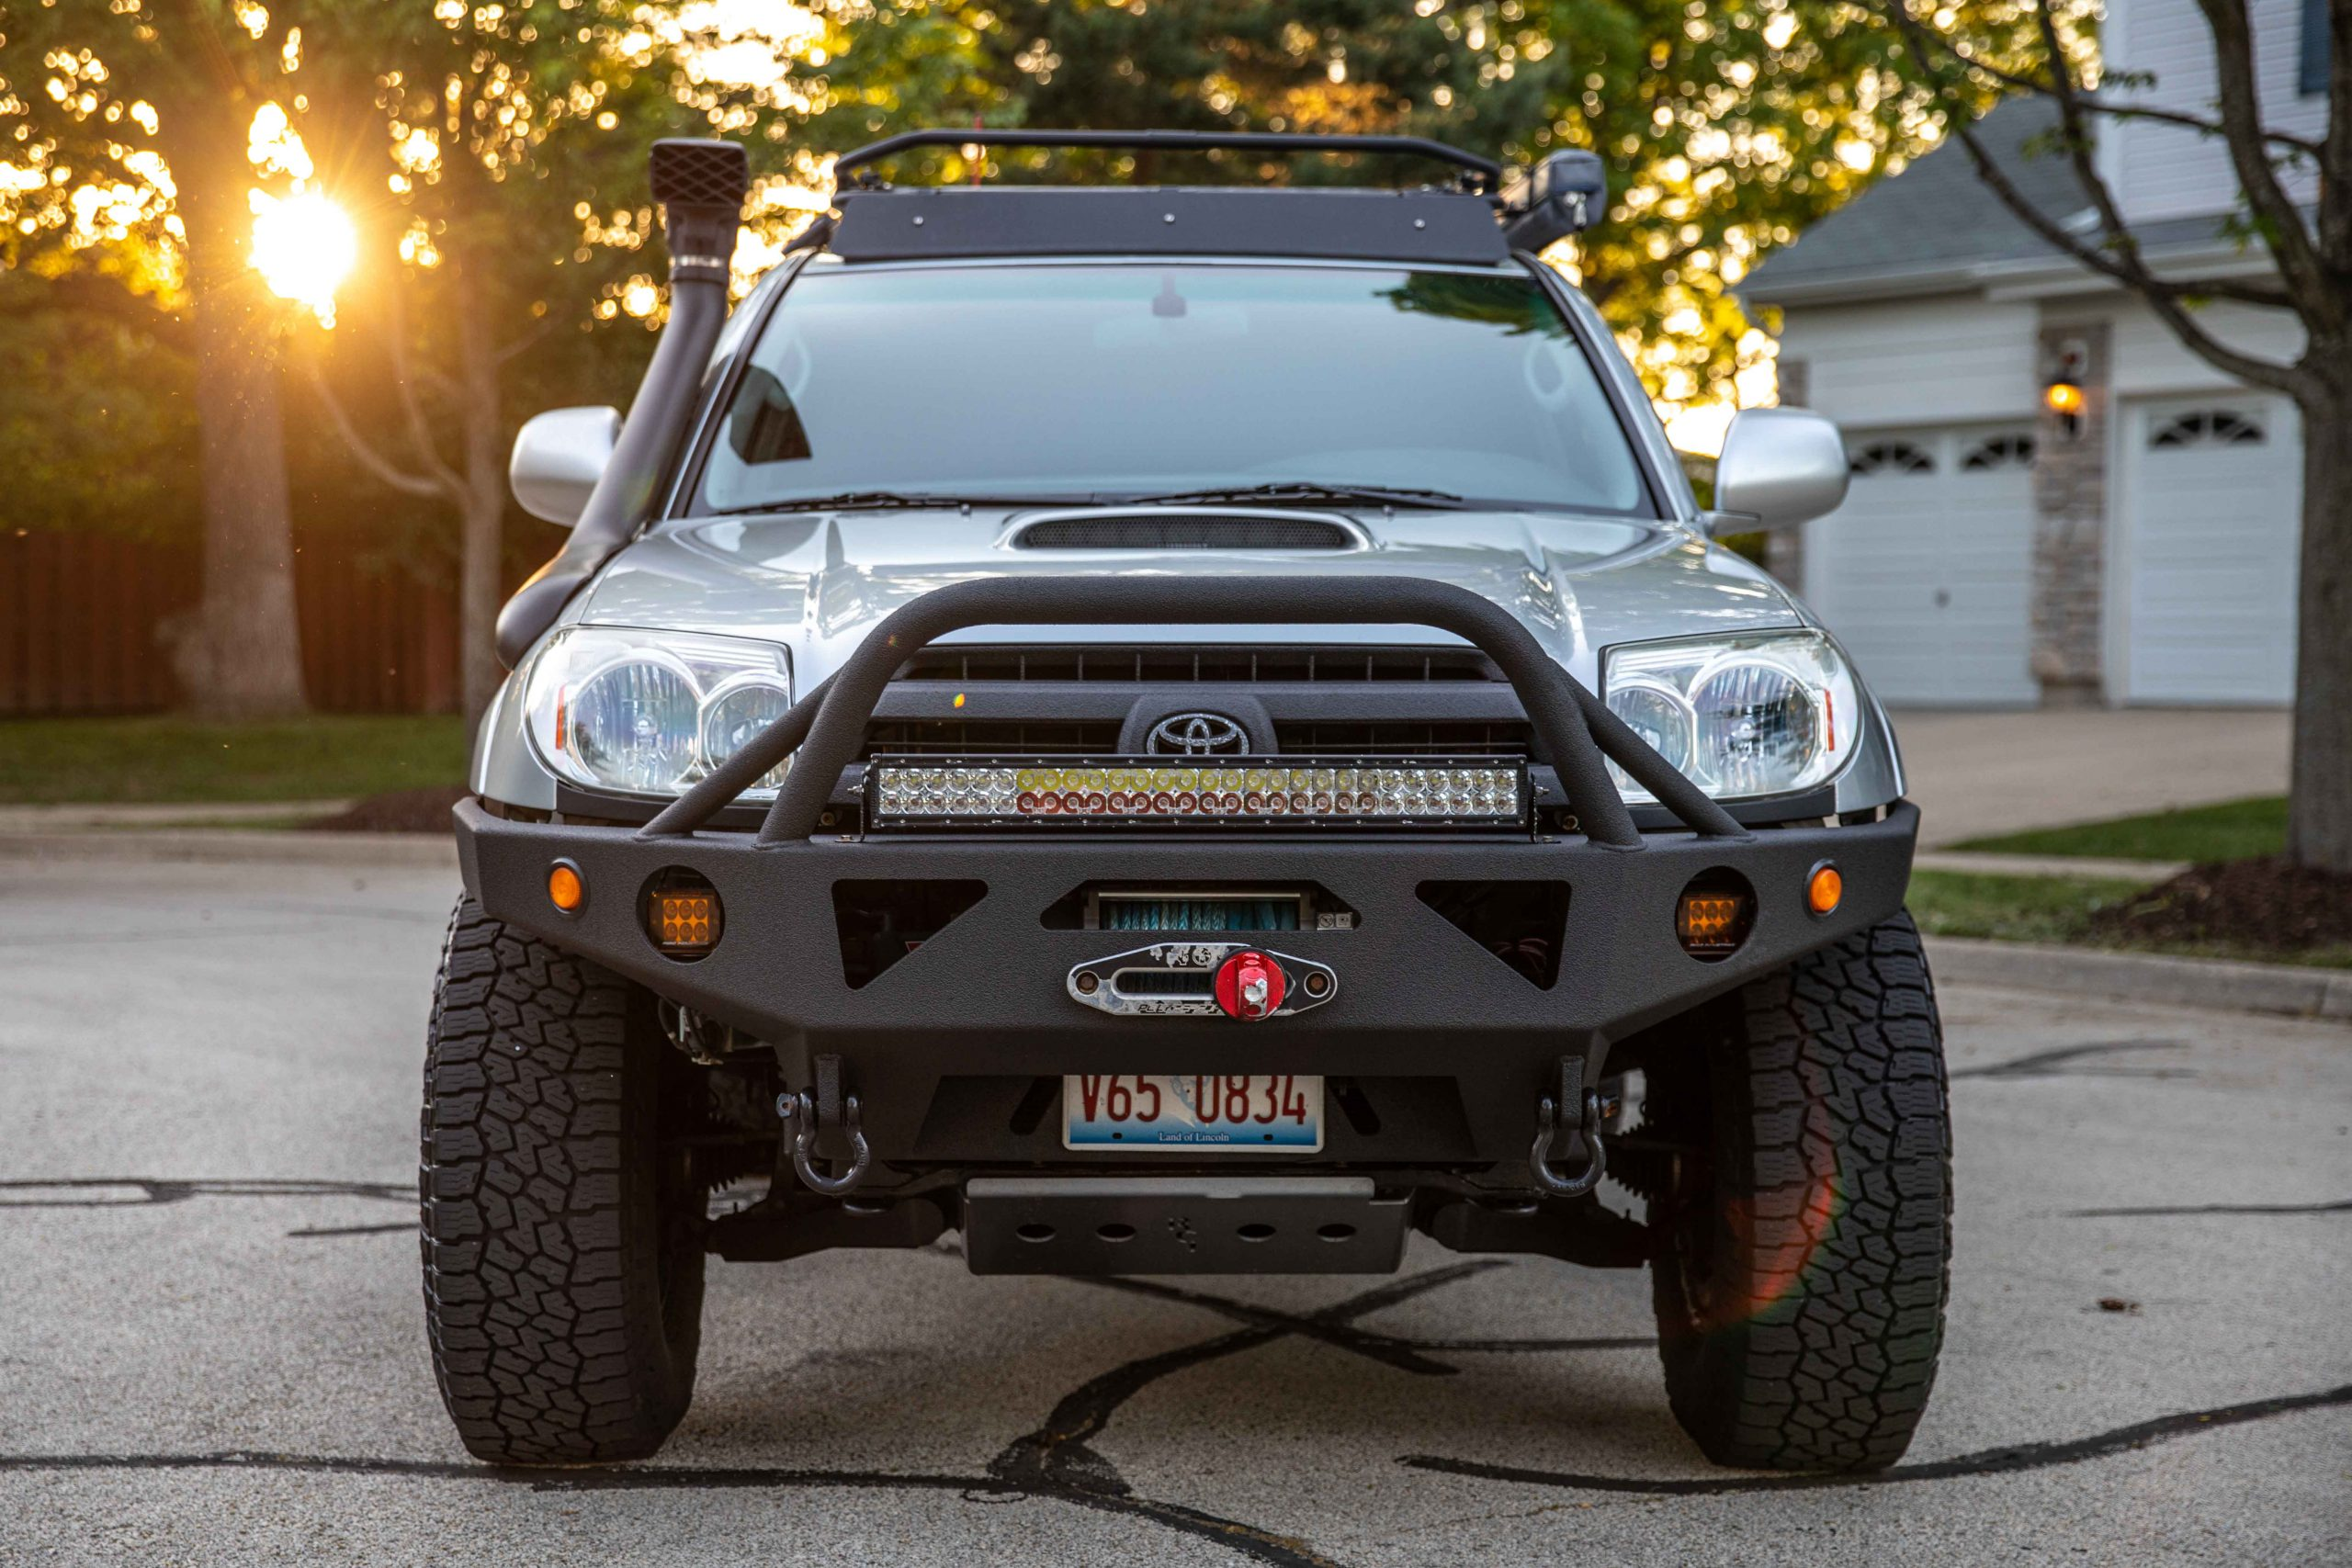 Built Overland & Off-Road Silver 4th Gen Toyota 4Runner